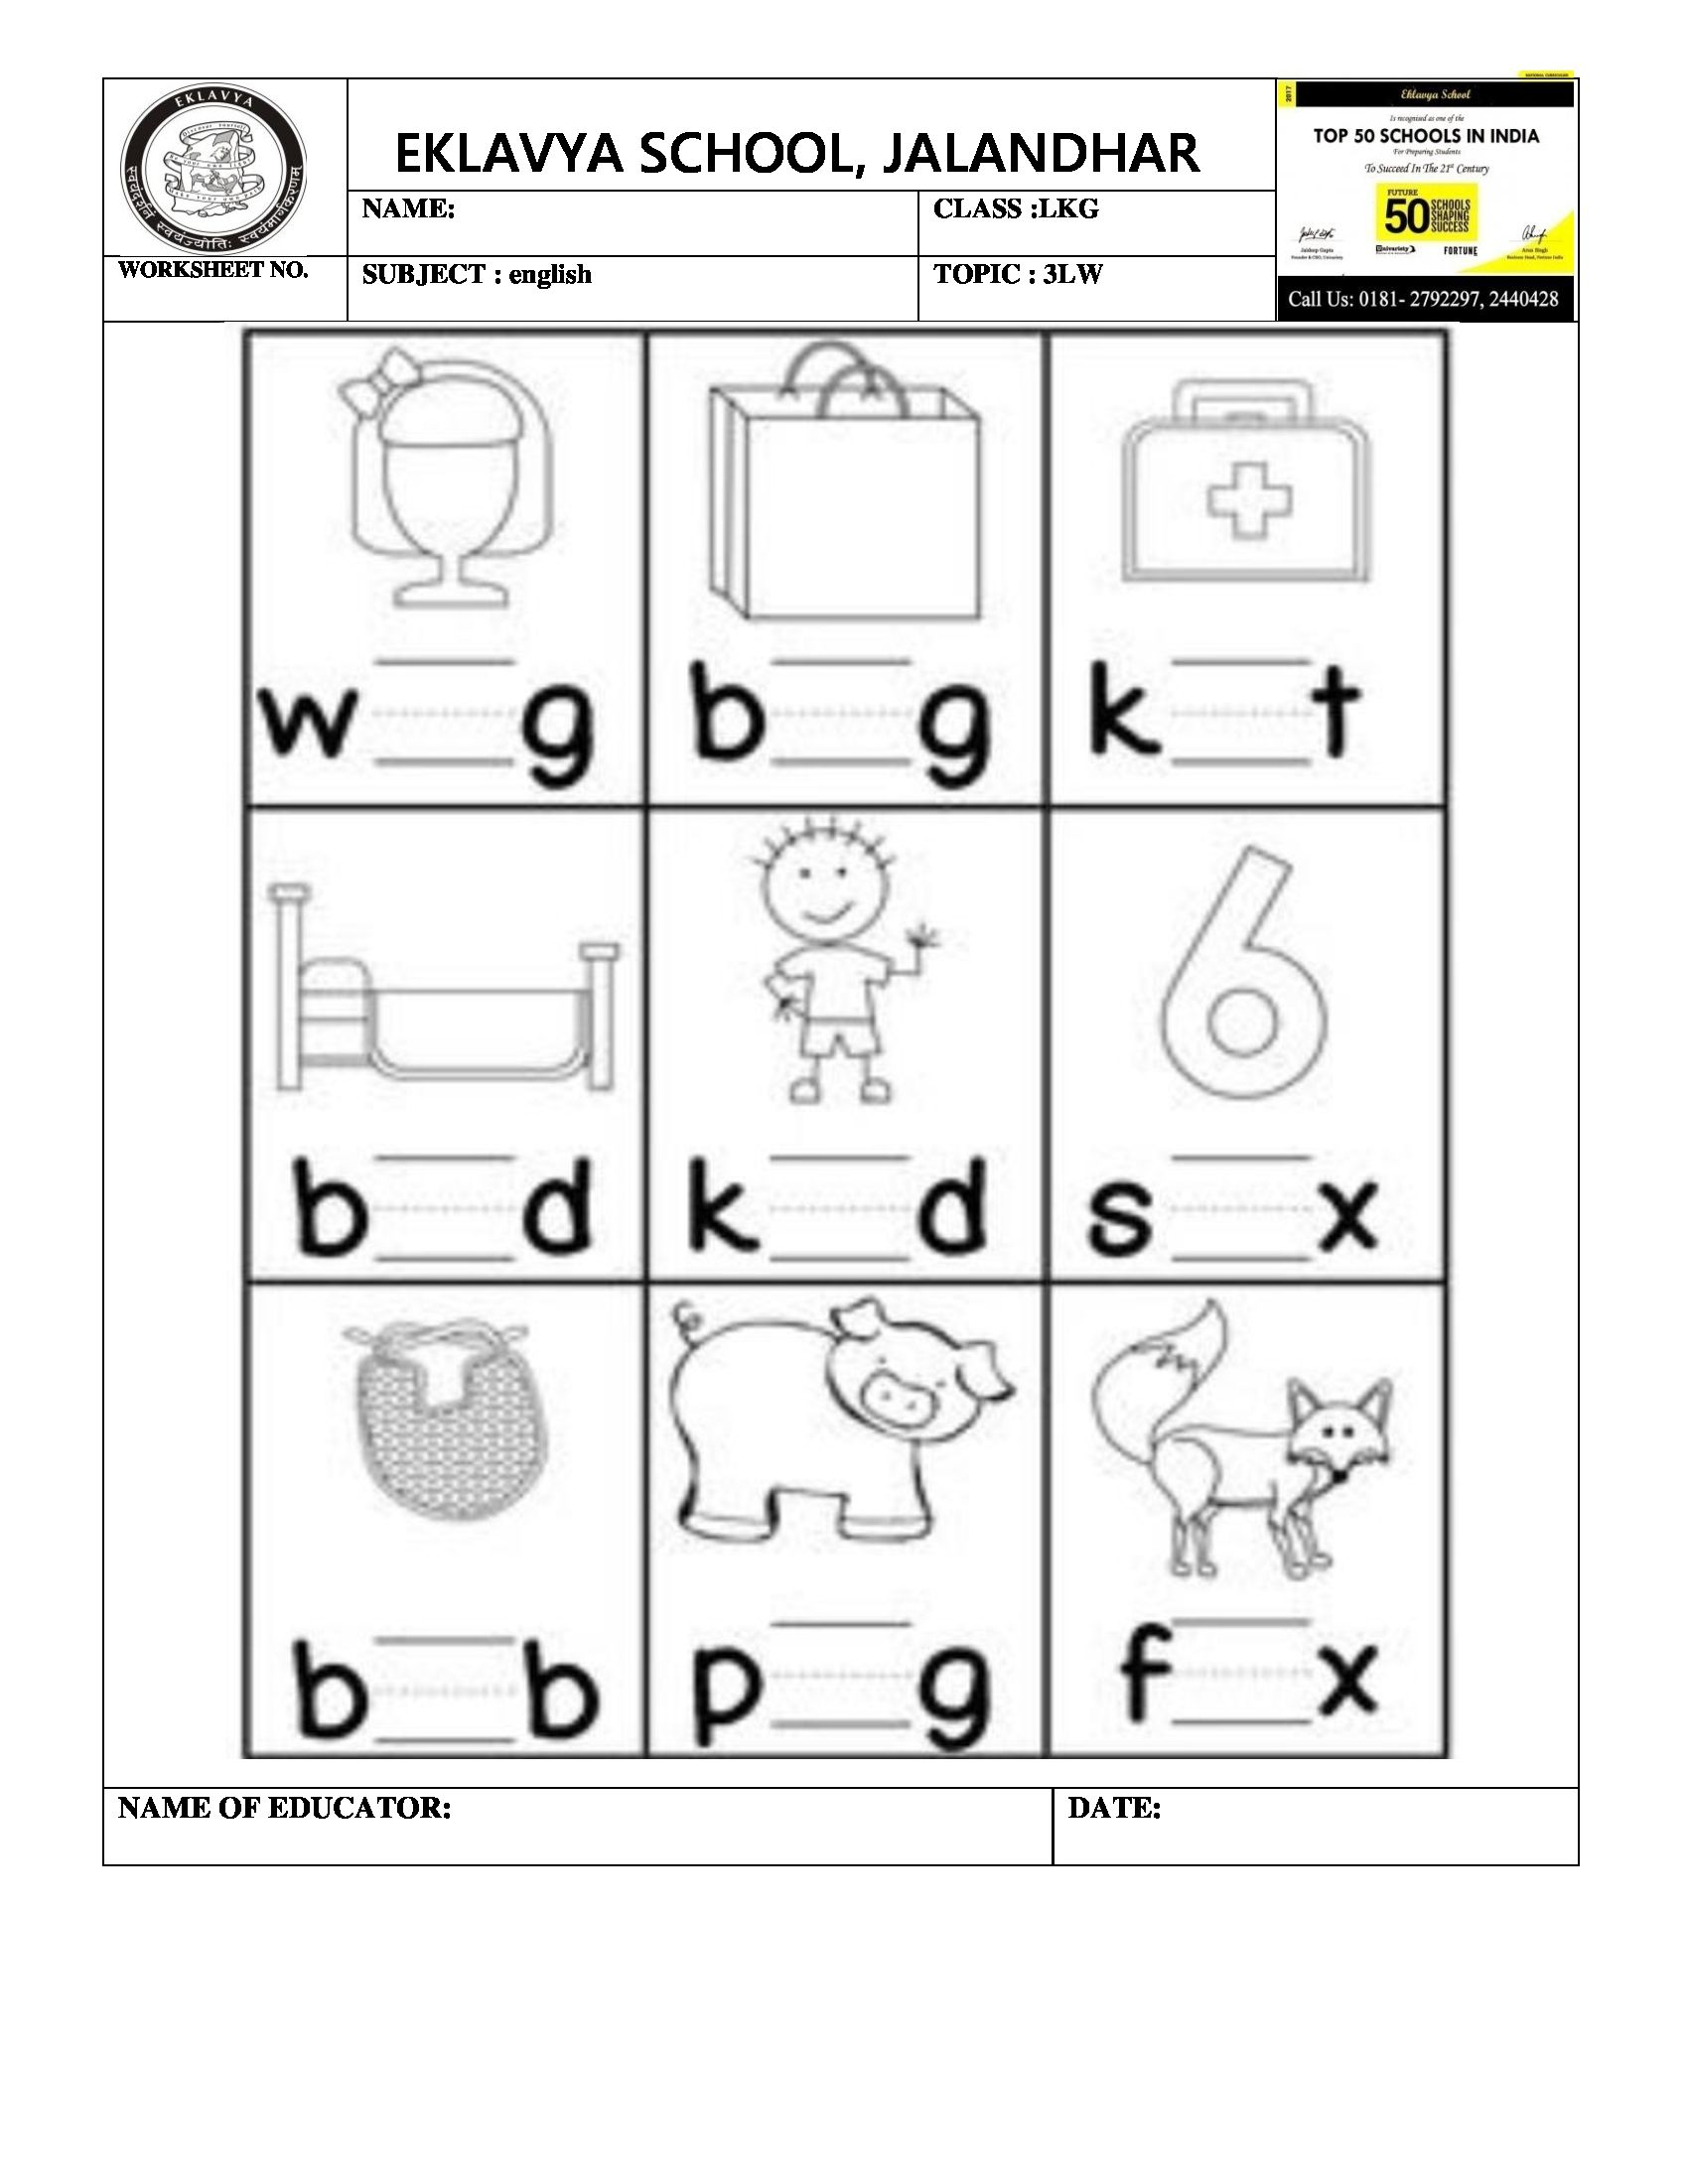 Worksheet On Three Letter Words I In The Middle